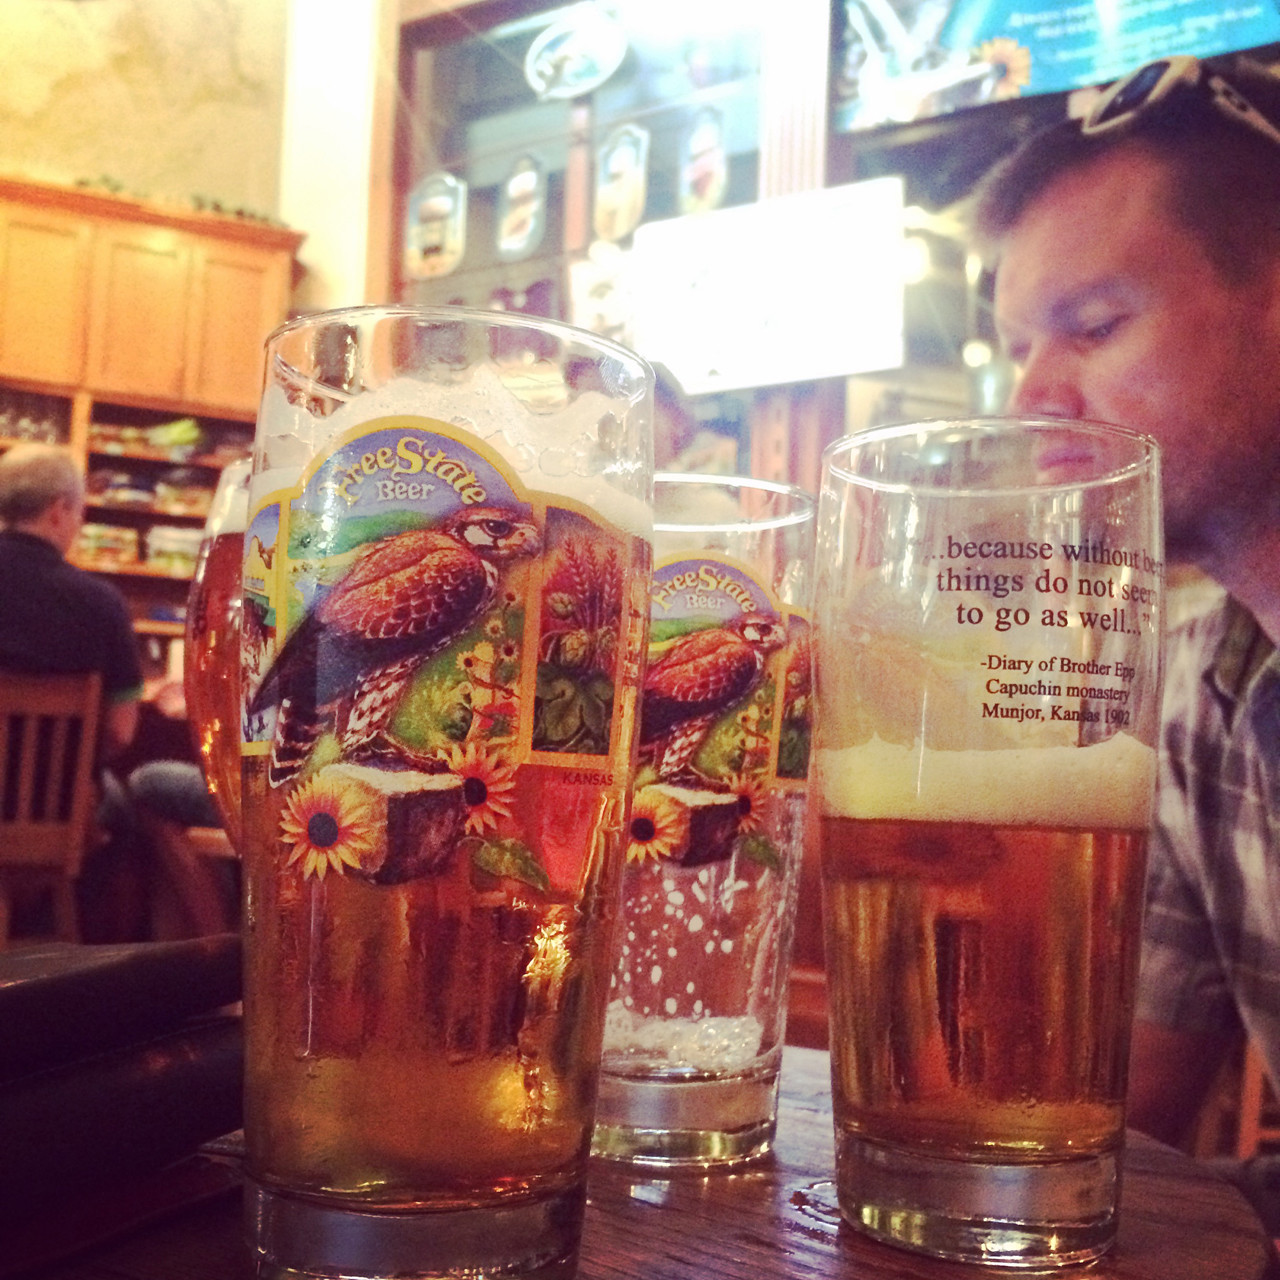 In Lawrence, Mothra gives us our first taste of the Kanza Kolsch. It's pretty damn good!